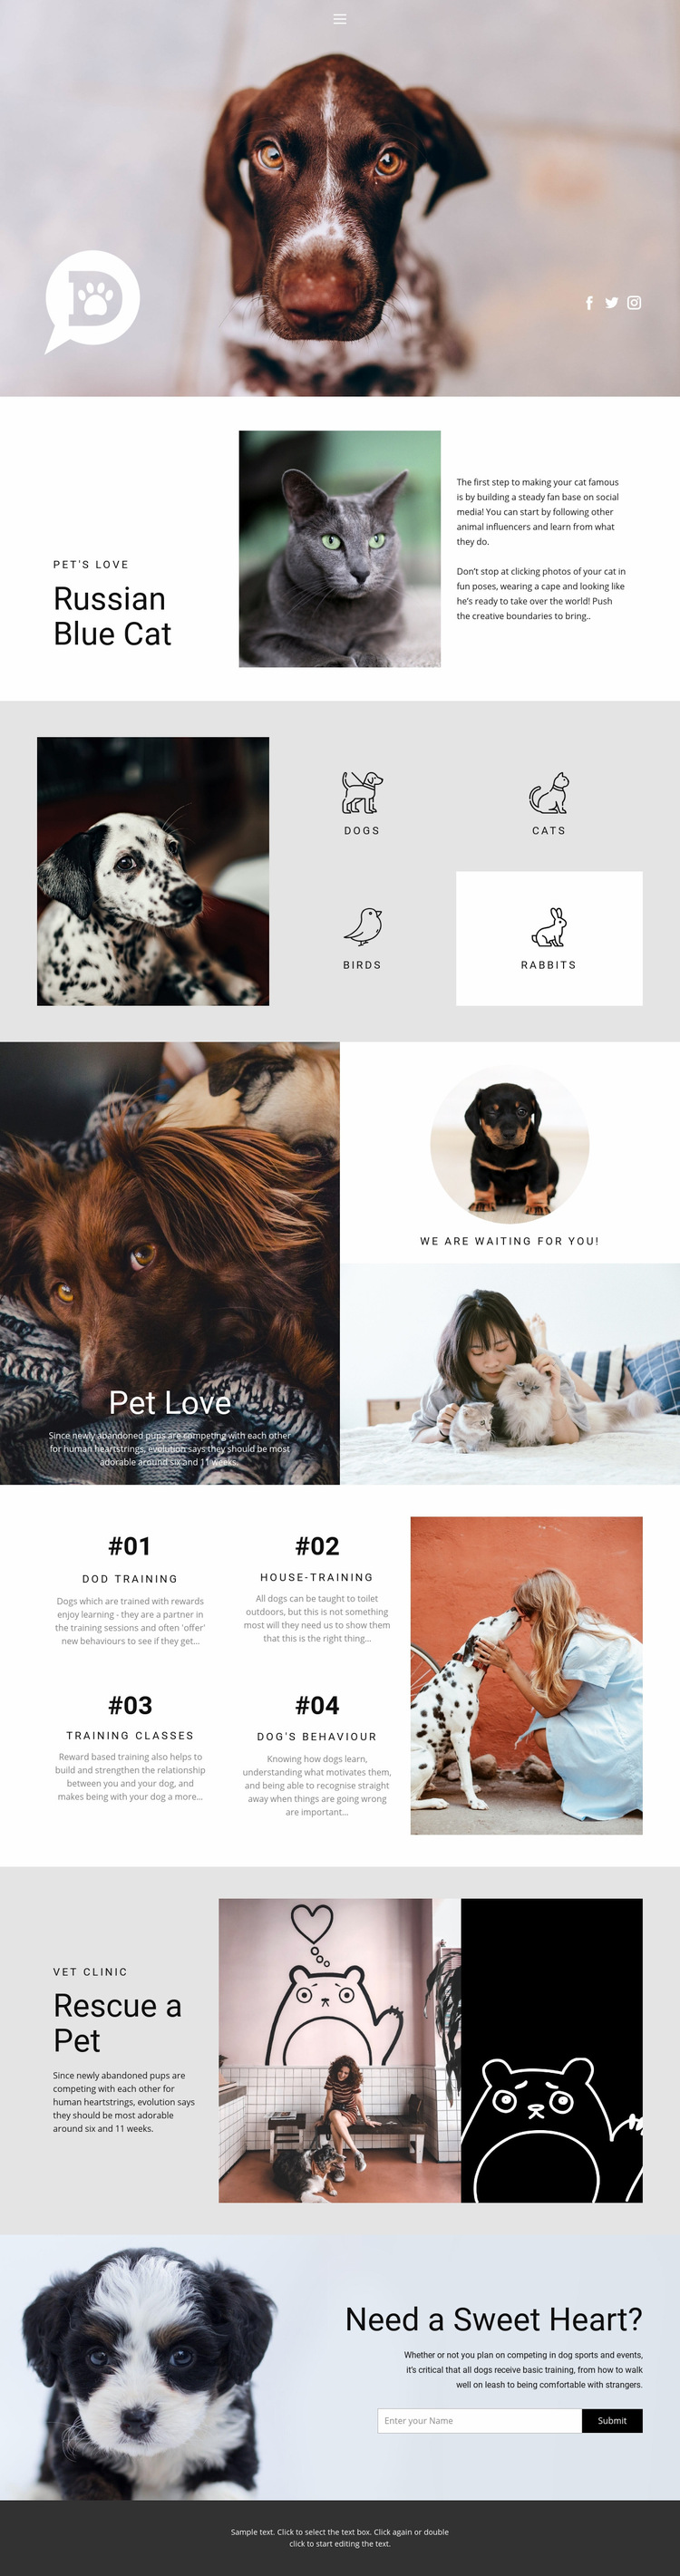 Care for pets and animals WordPress Website